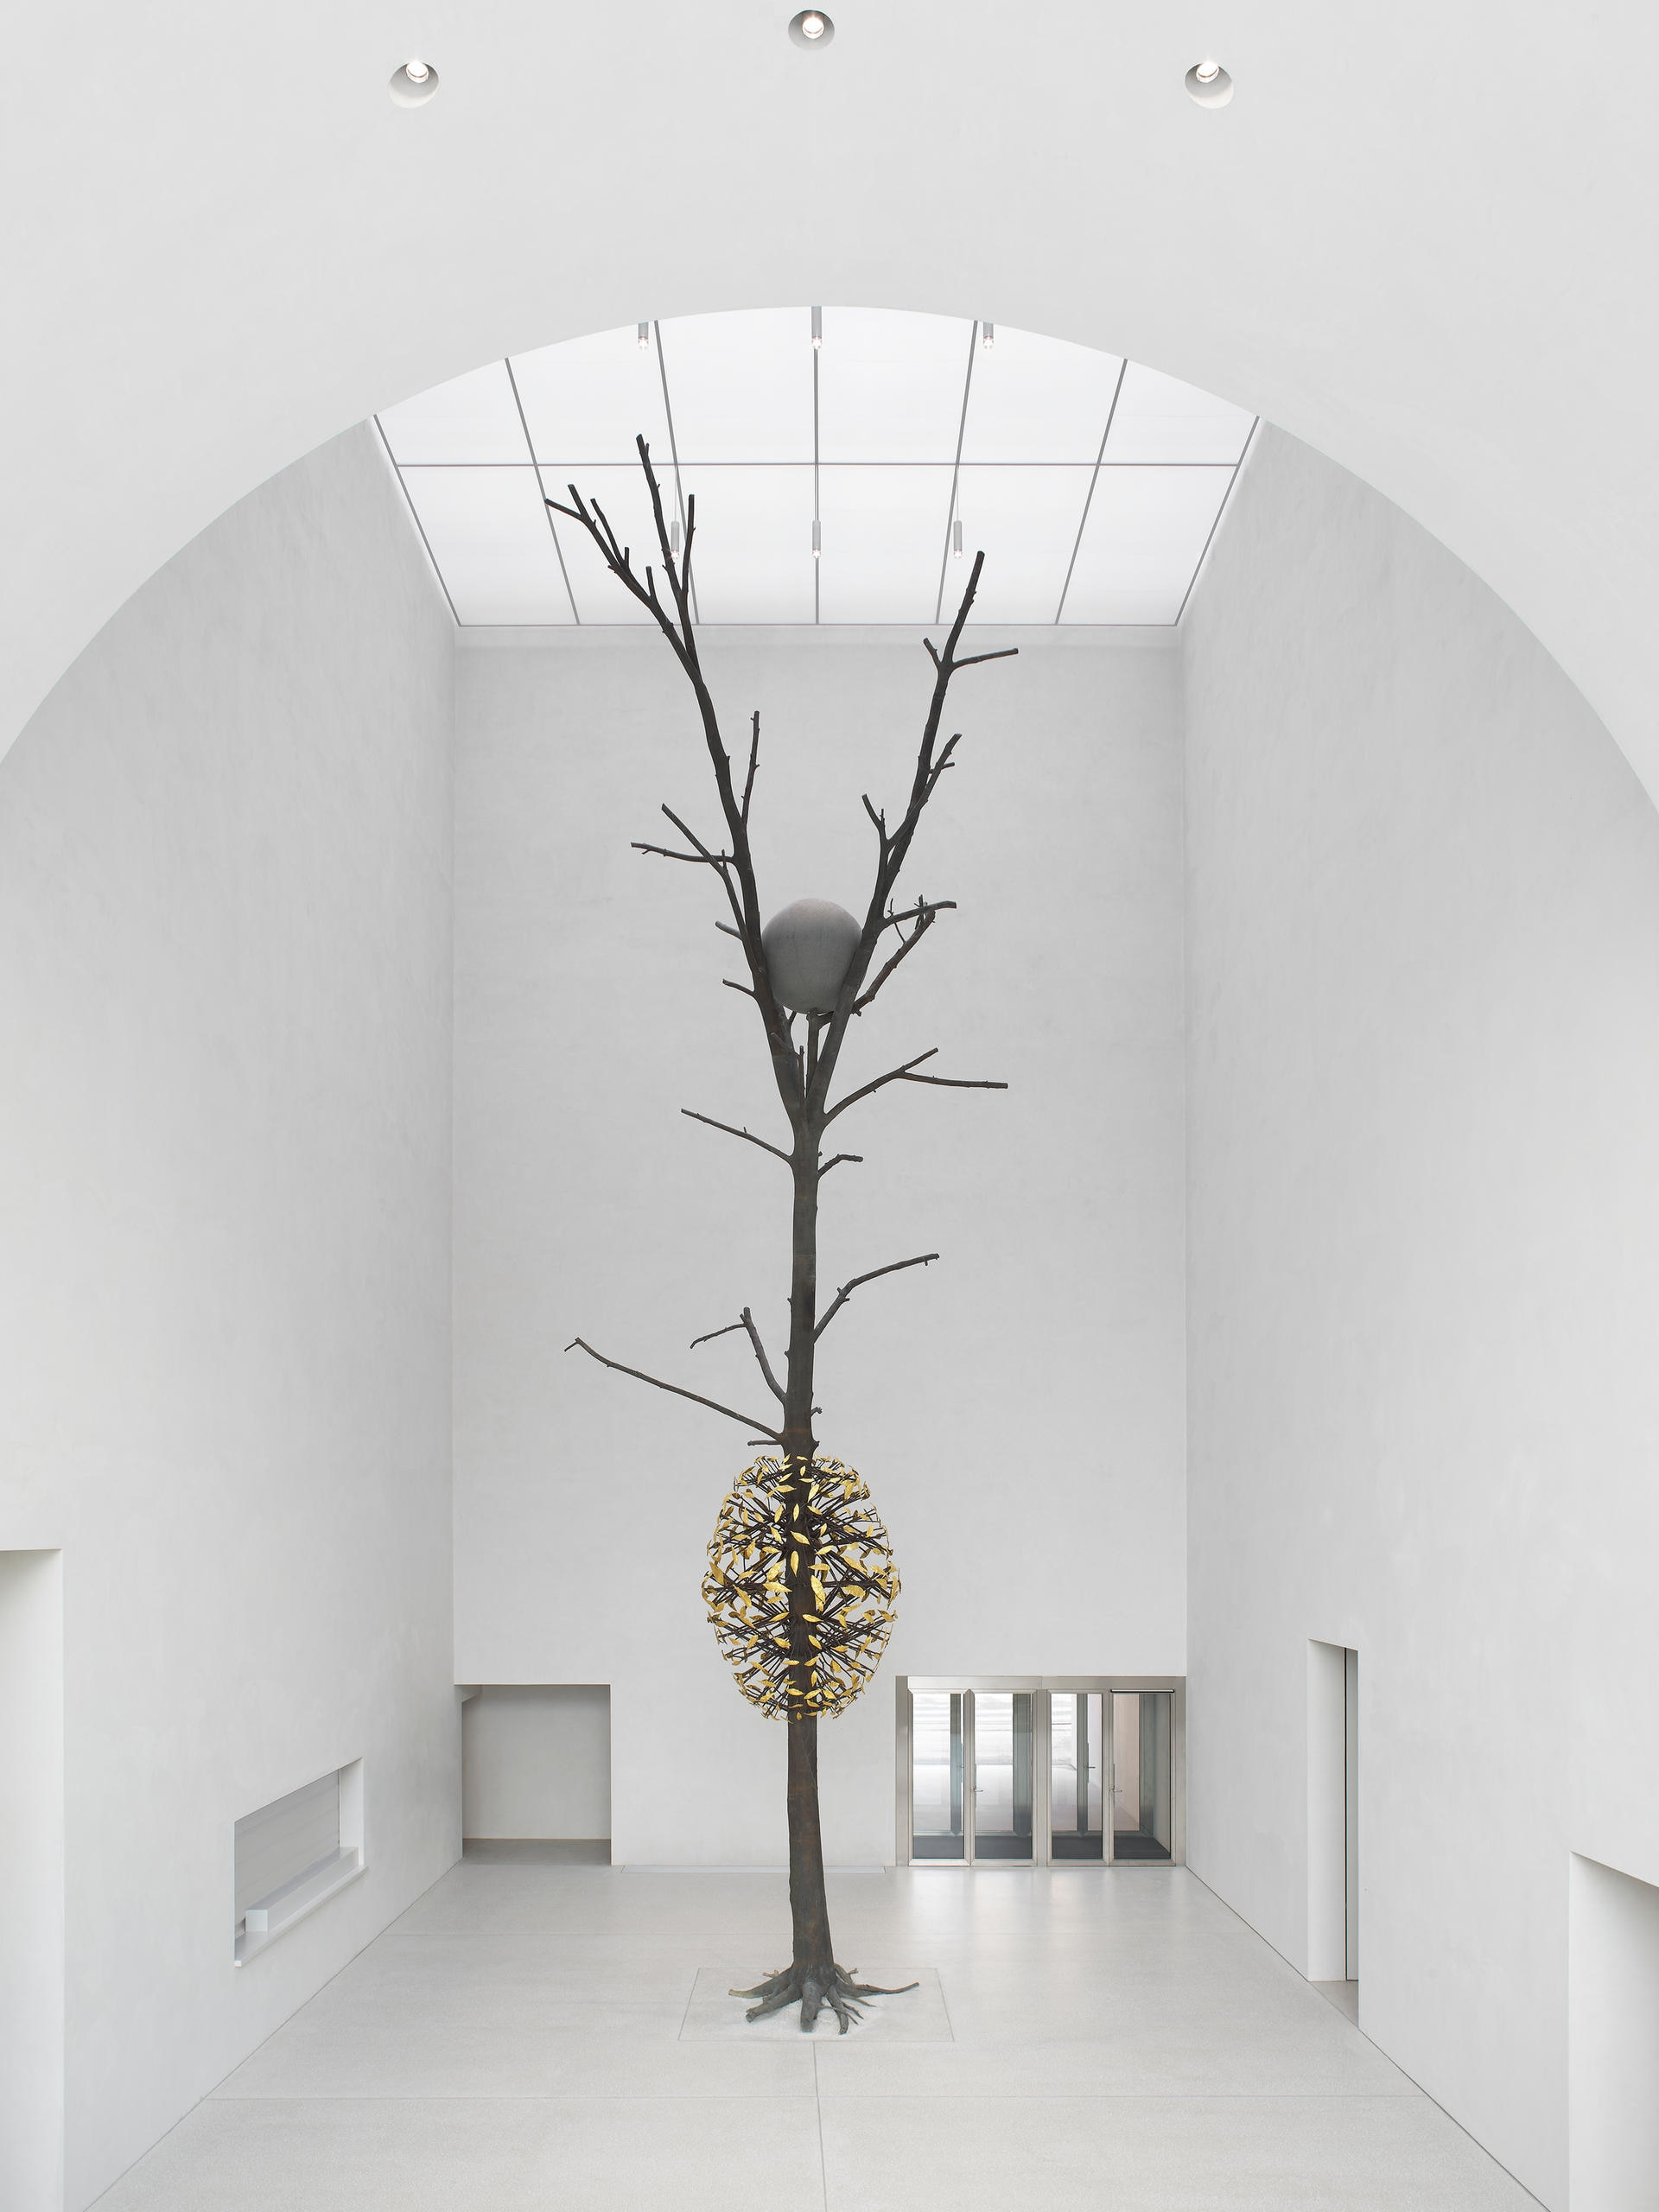 Giuseppe Penone, Luce e ombra, 2011 in the MCB-A hall